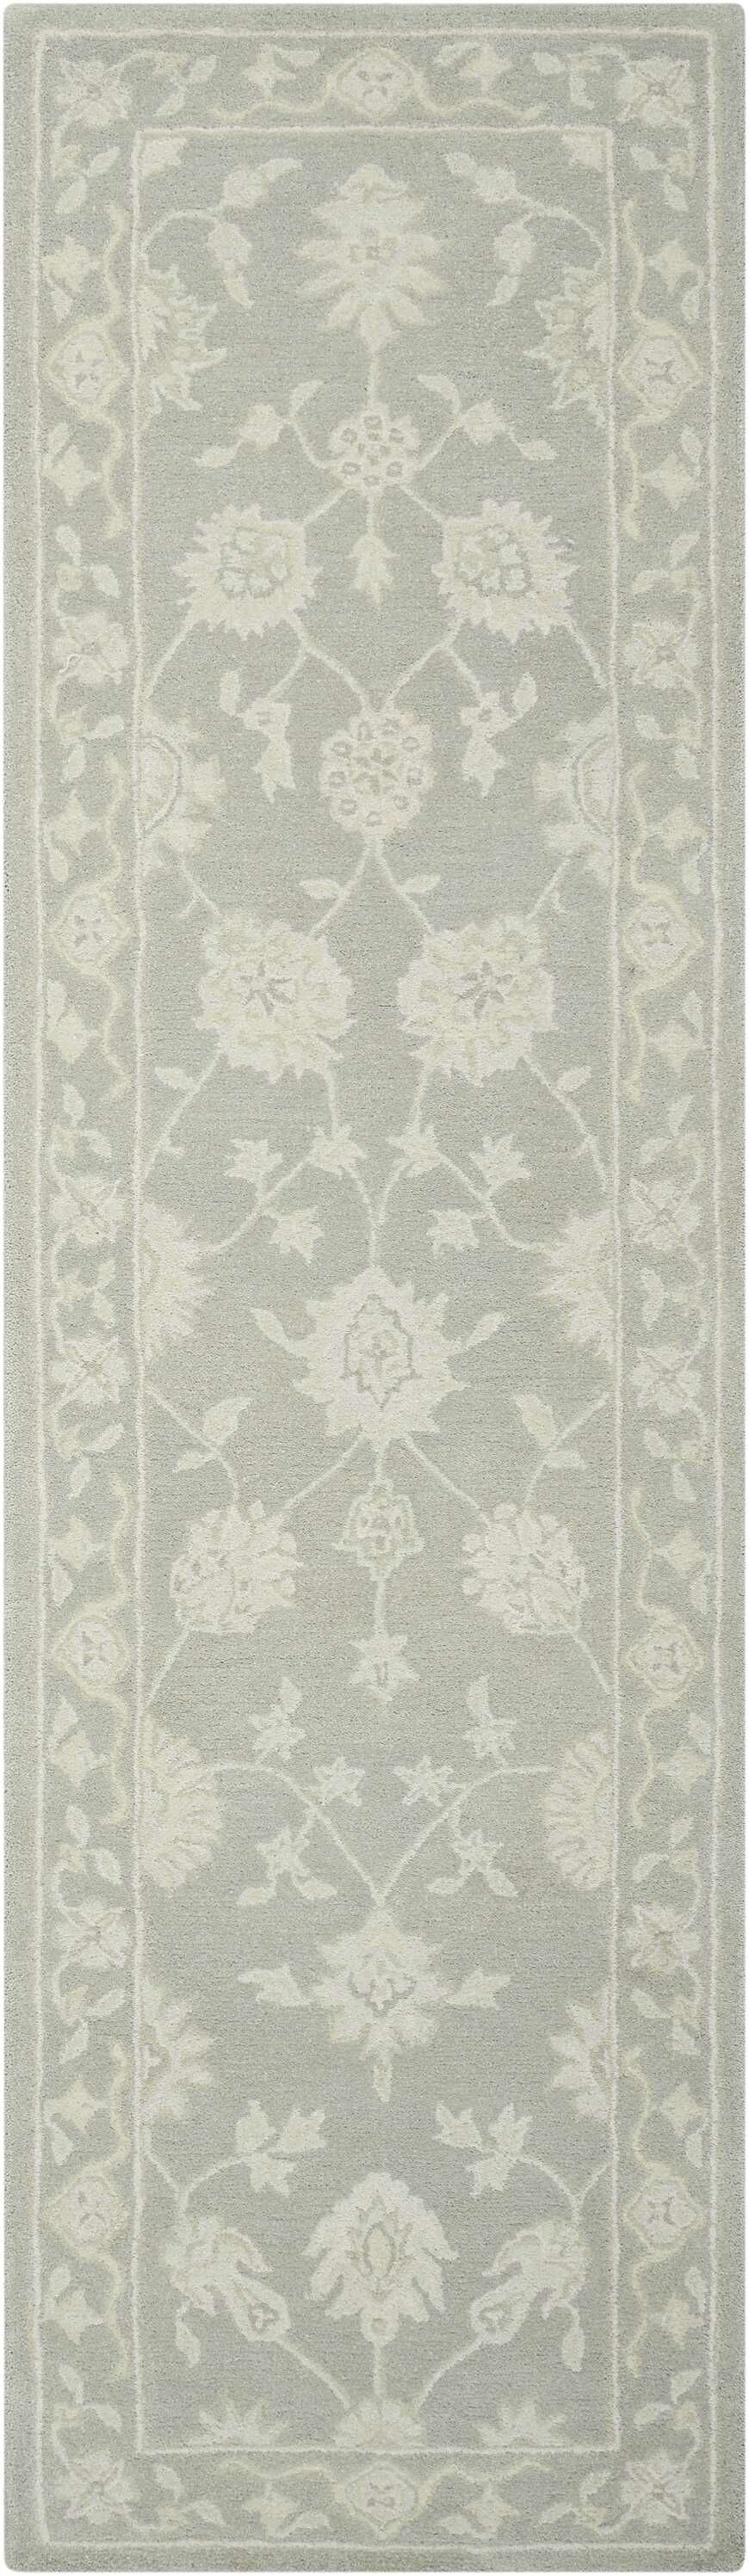 Ridgeville Hand-Tufted Light Taupe Area Rug Rug Size: Rectangle 9'6